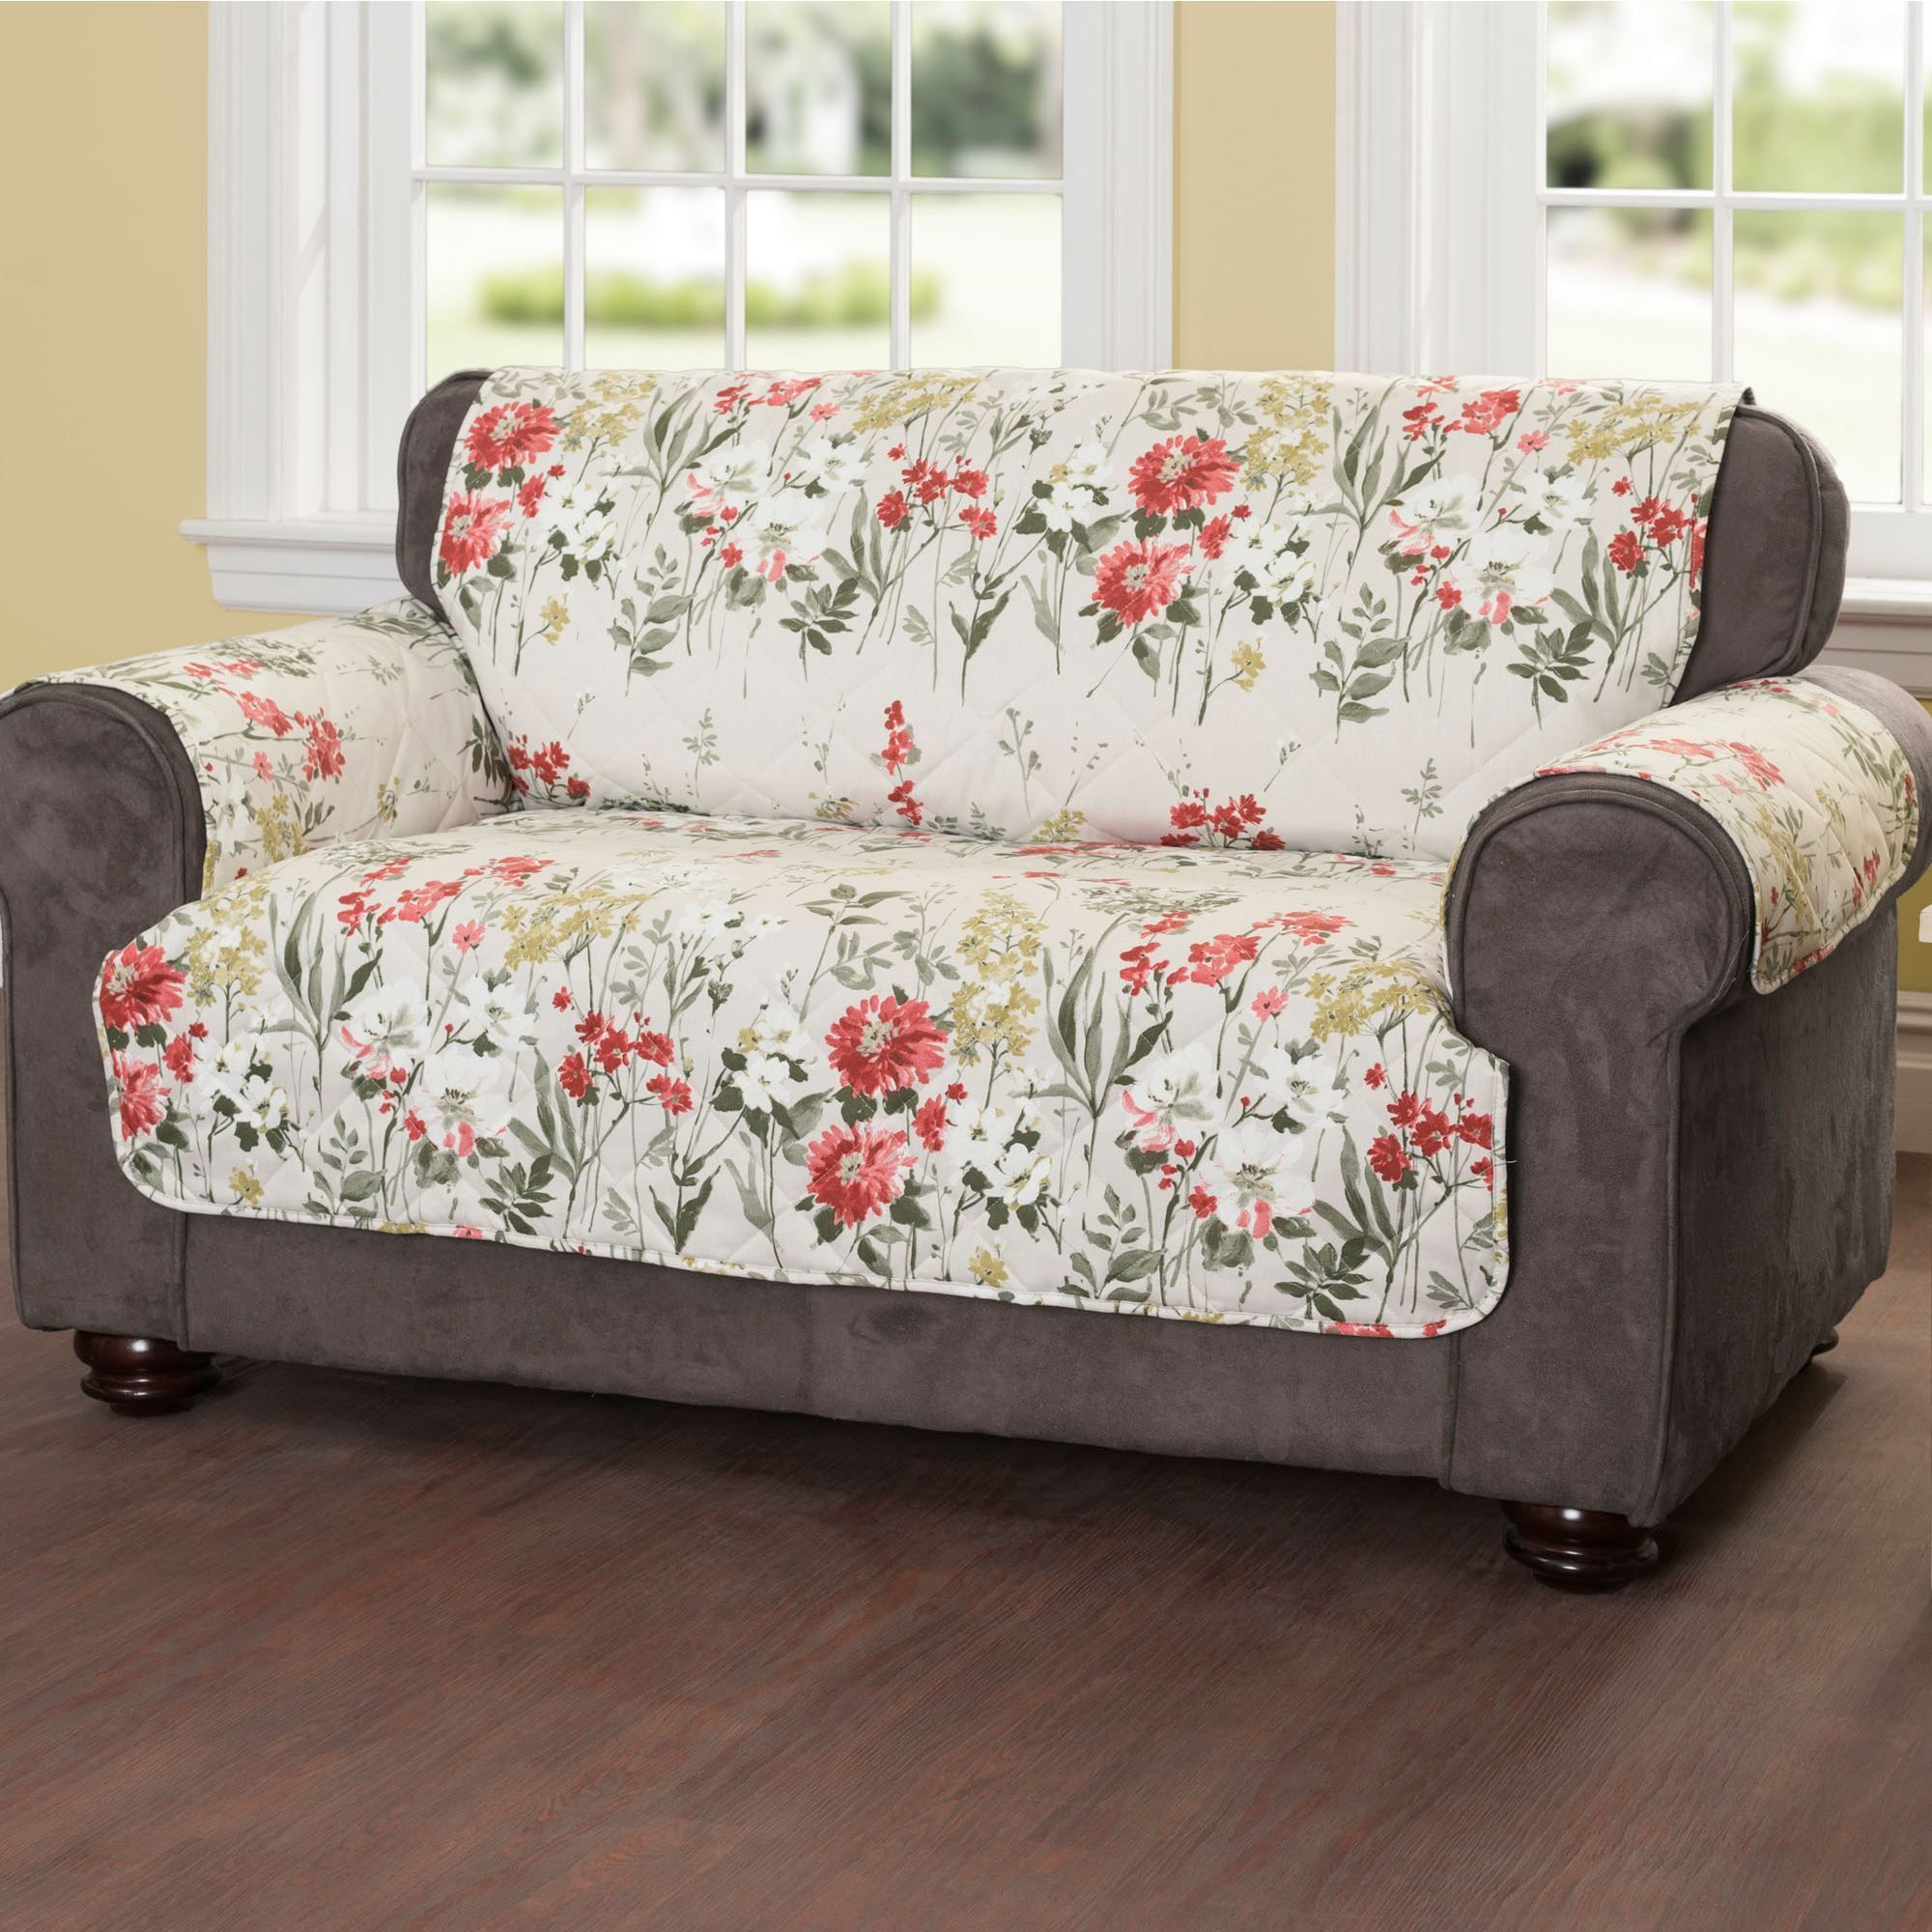 green floral sofa slim bed meadow quilted furniture protectors living room